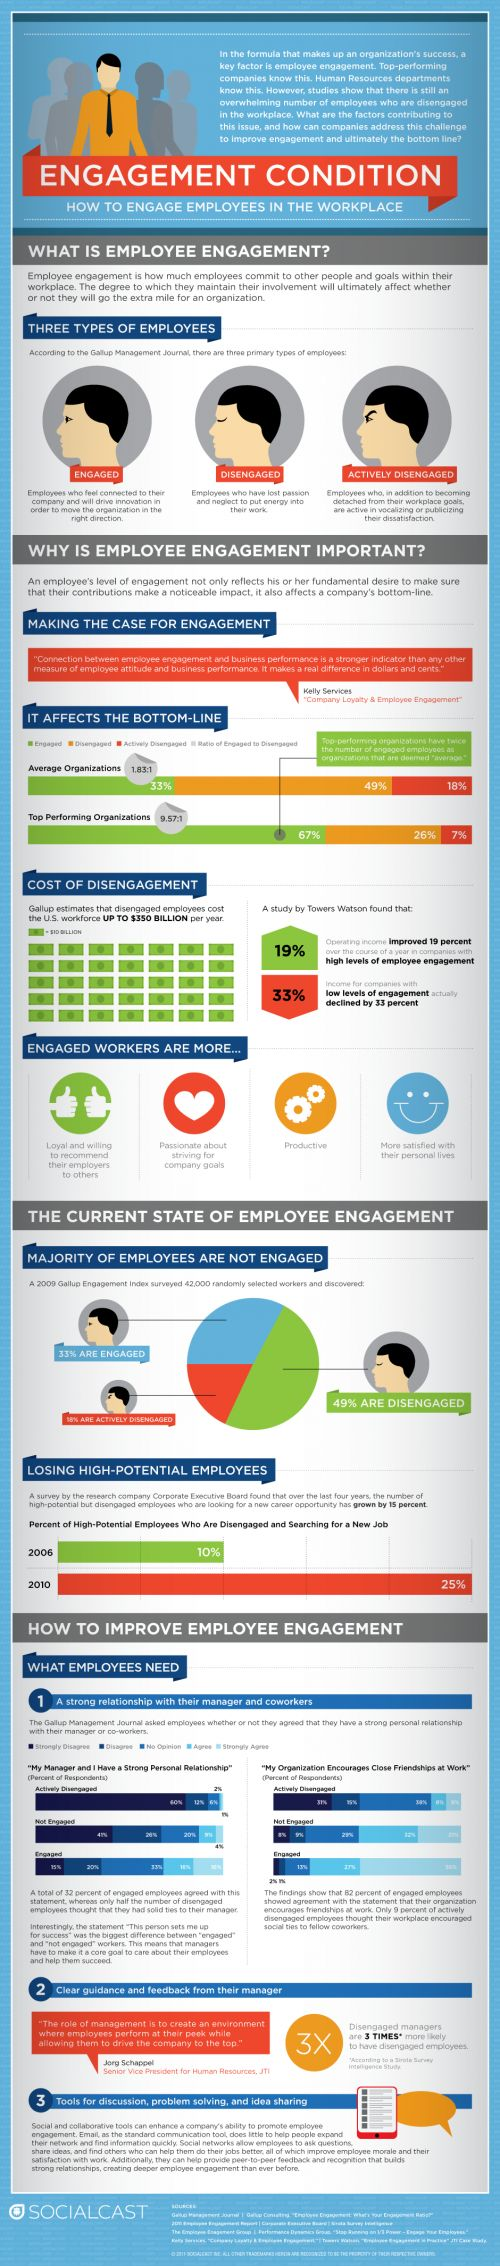 What does Disengagement cost?